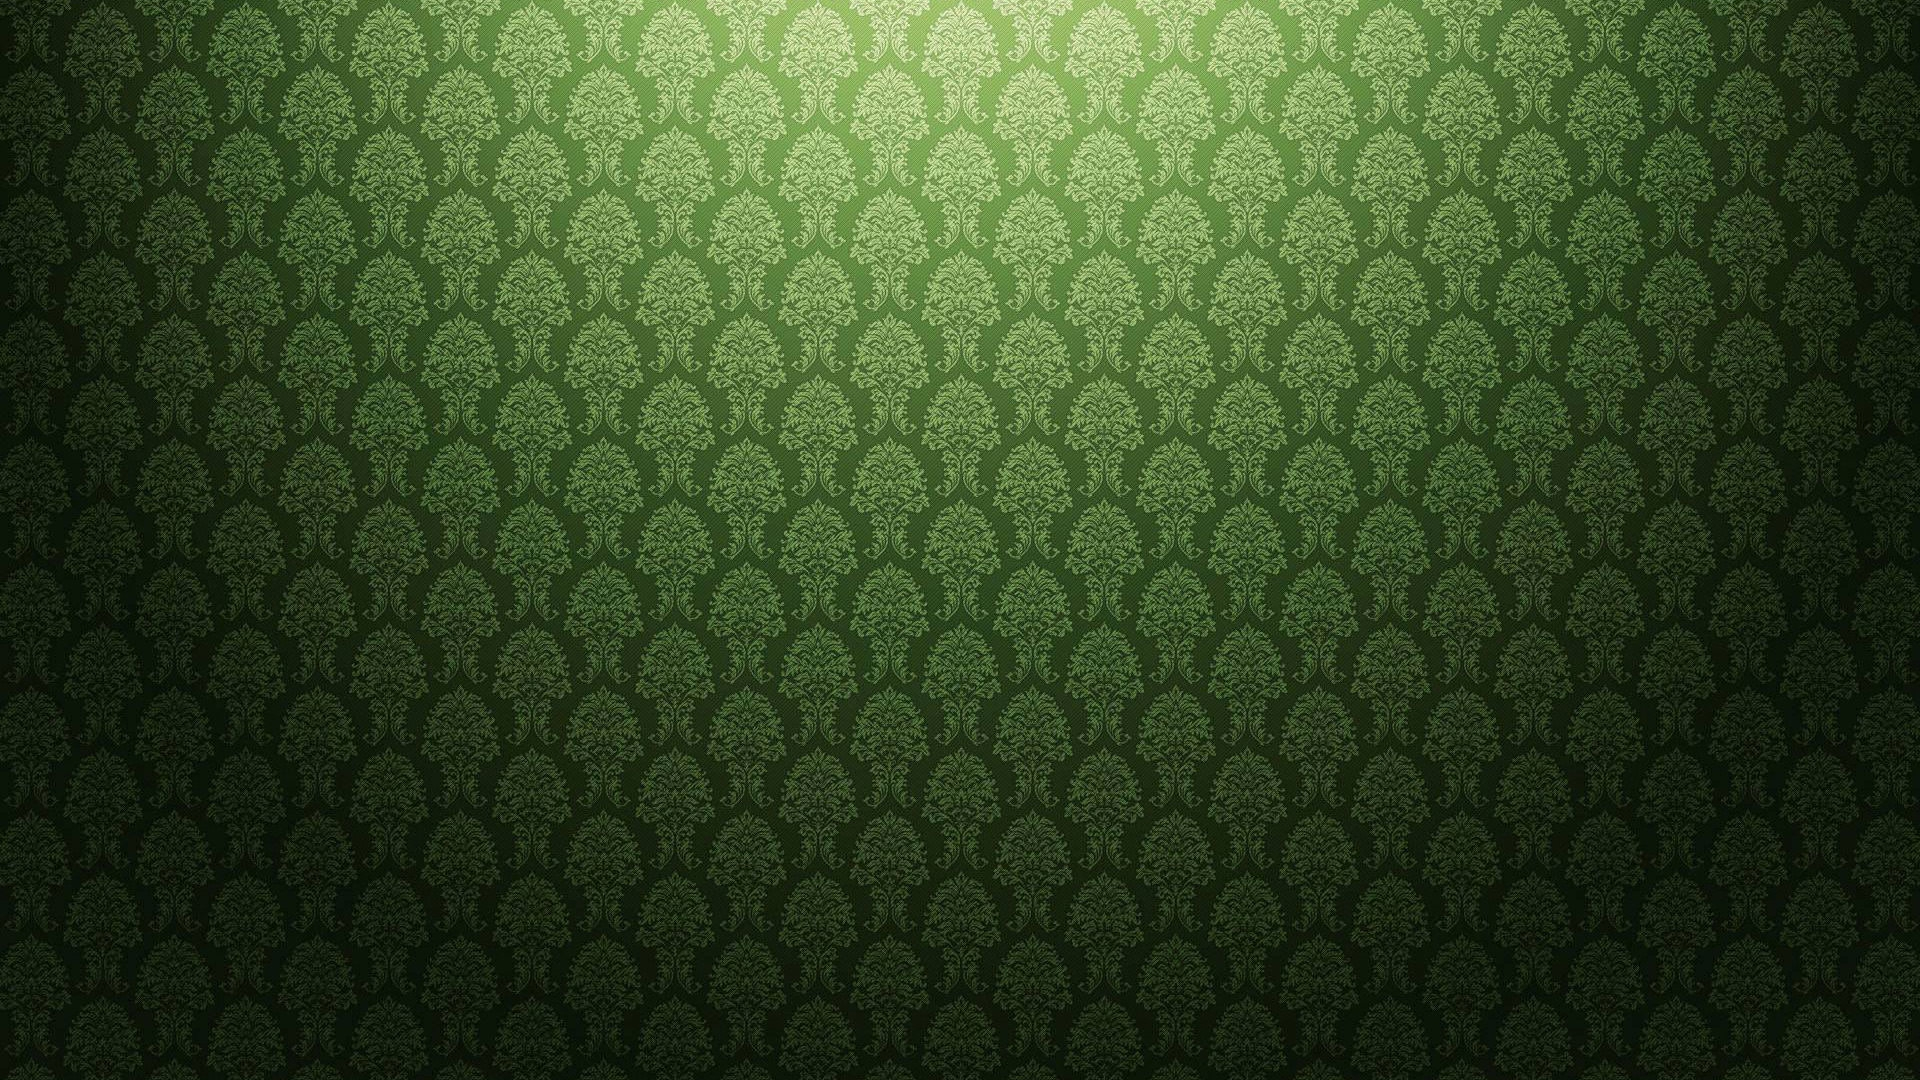 Green Floral HD wallpaper Pattern